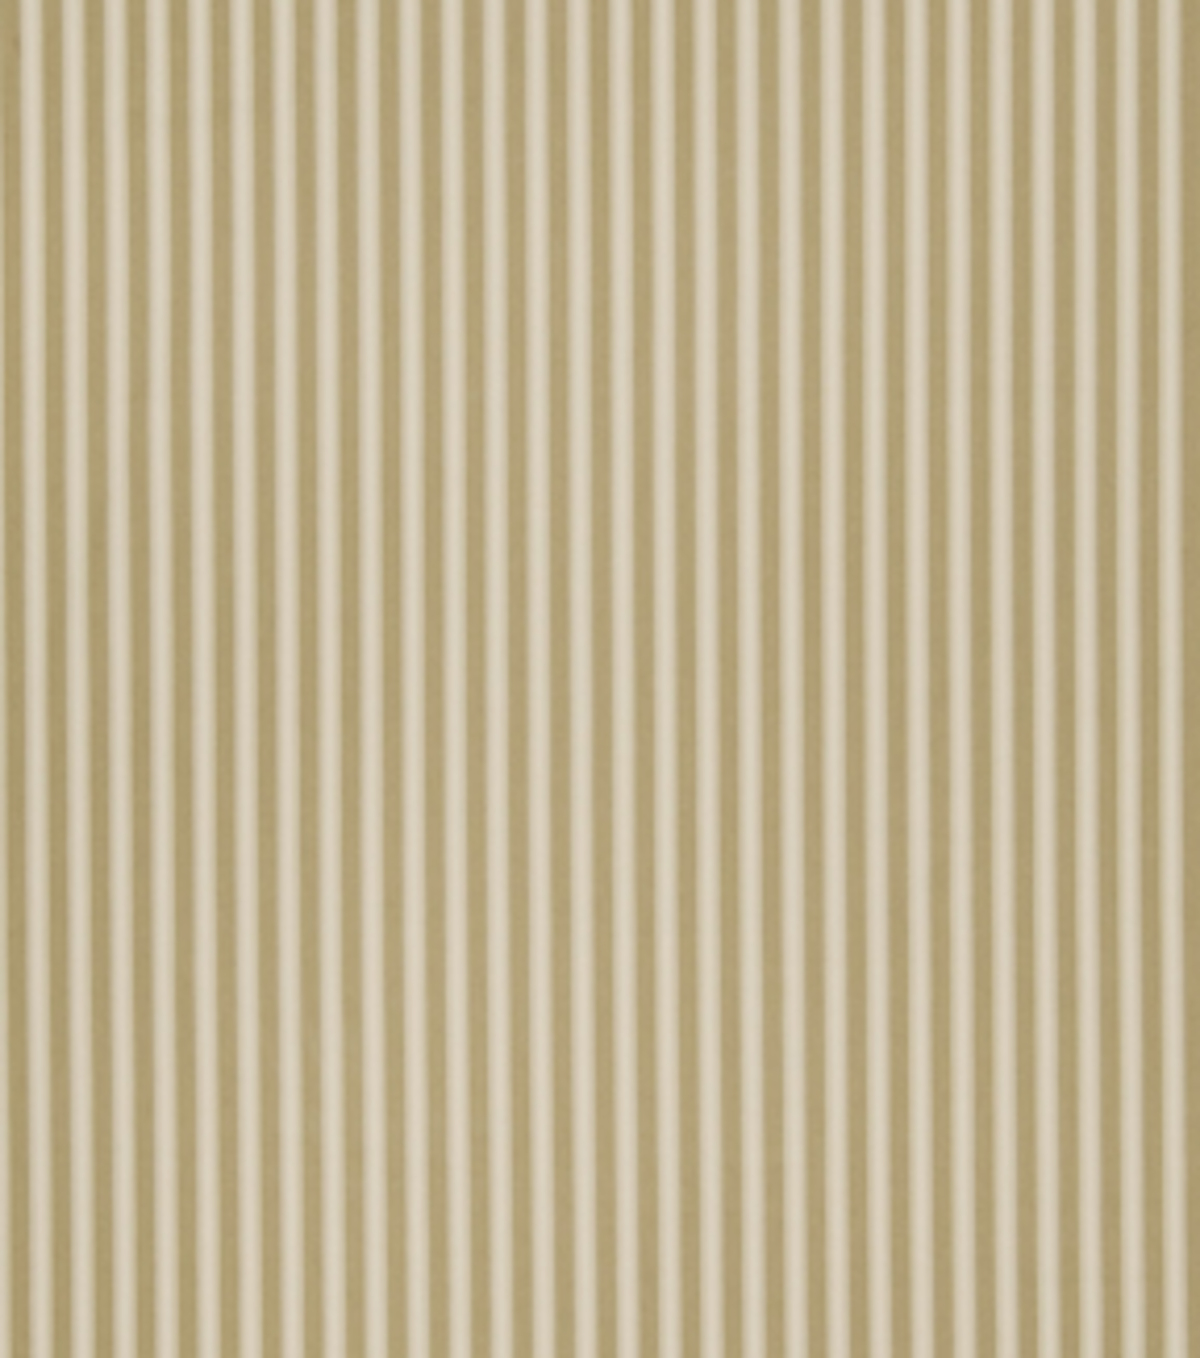 Home Decor 8\u0022x8\u0022 Fabric Swatch-French General Crayons Natural